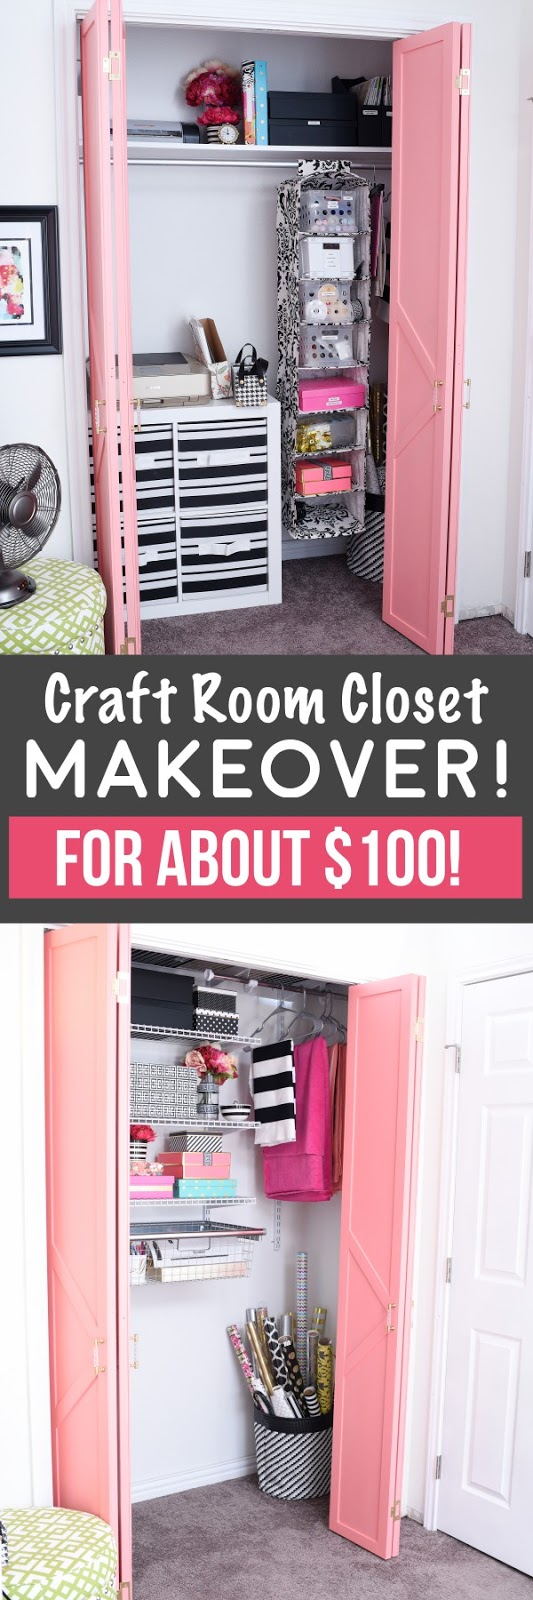 Turn your craft closet into an organized and posh oasis with the use of inexpensive closet systems. Here's a step-by-step tutorial- love how organized it is!